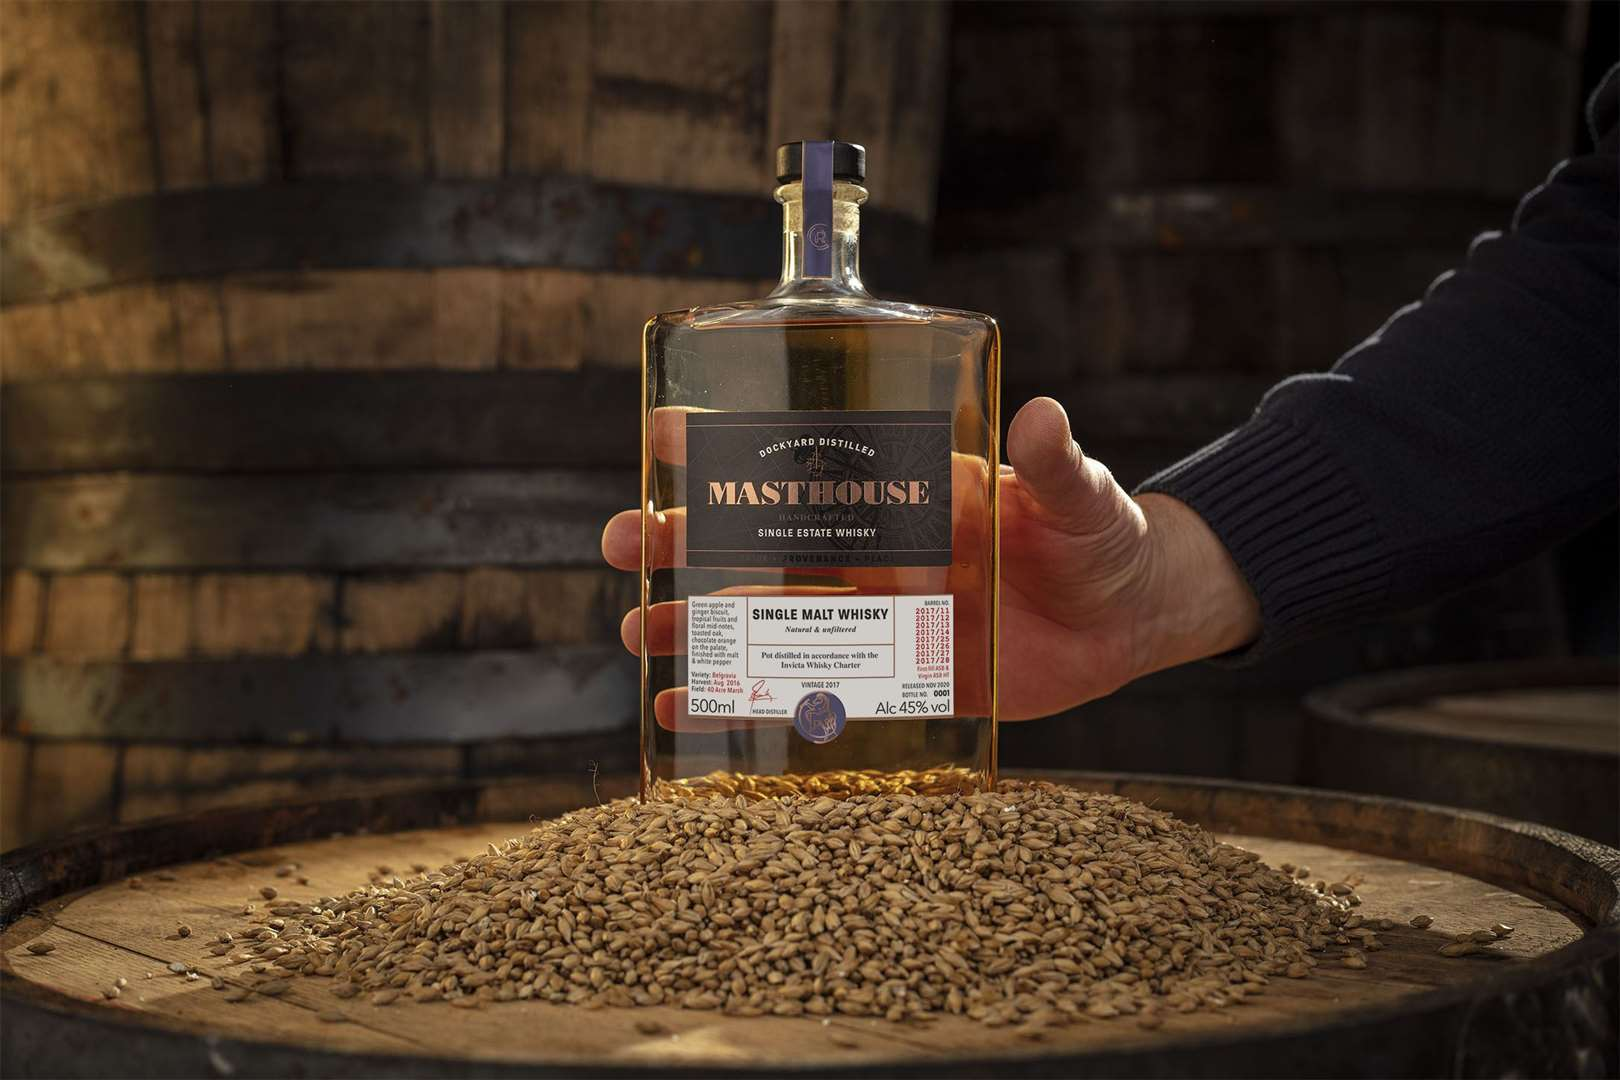 Masthouse whisky made by Copper Rivet in Chatham